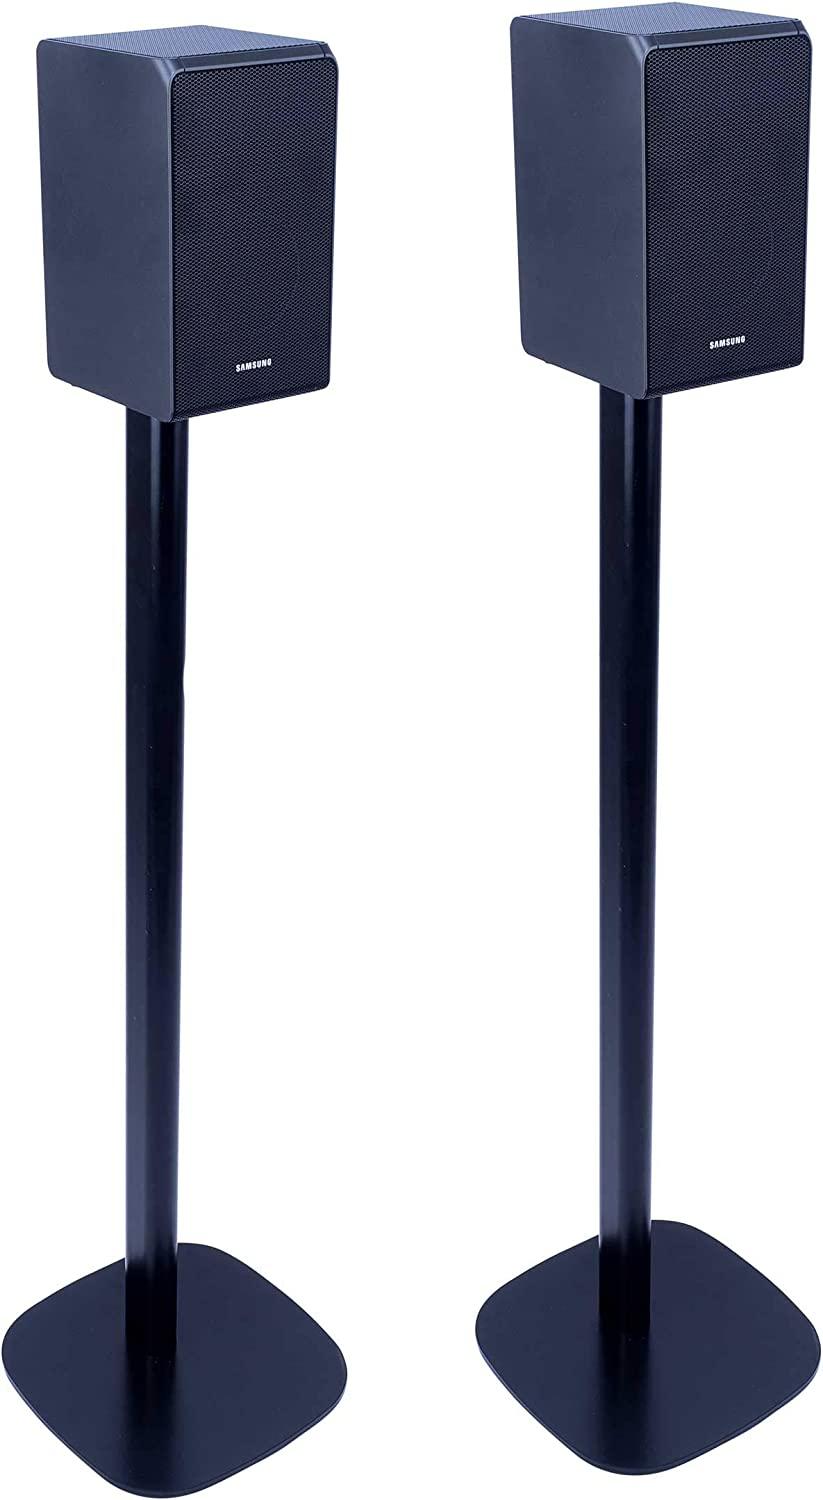 Vebos Floor Stand Samsung HW-N950 Black Set en Optimal Experience in Every Room - Allows You to Place Your Samsung HW-N950 Exactly Where You Want it - Two Years Warranty